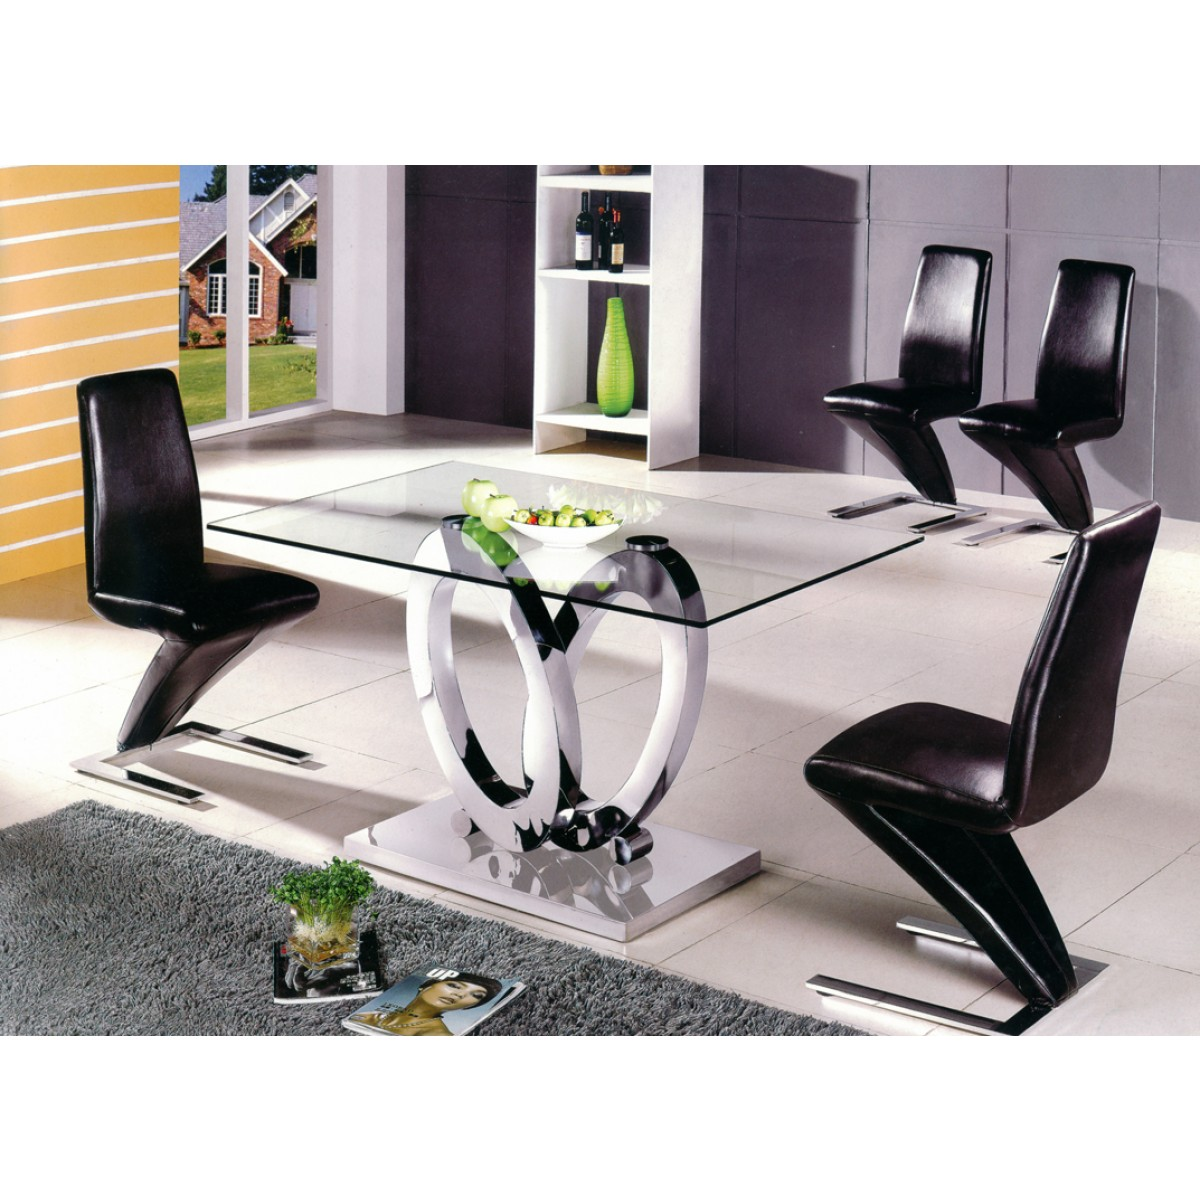 table manger design ellipse taille au choix tables. Black Bedroom Furniture Sets. Home Design Ideas